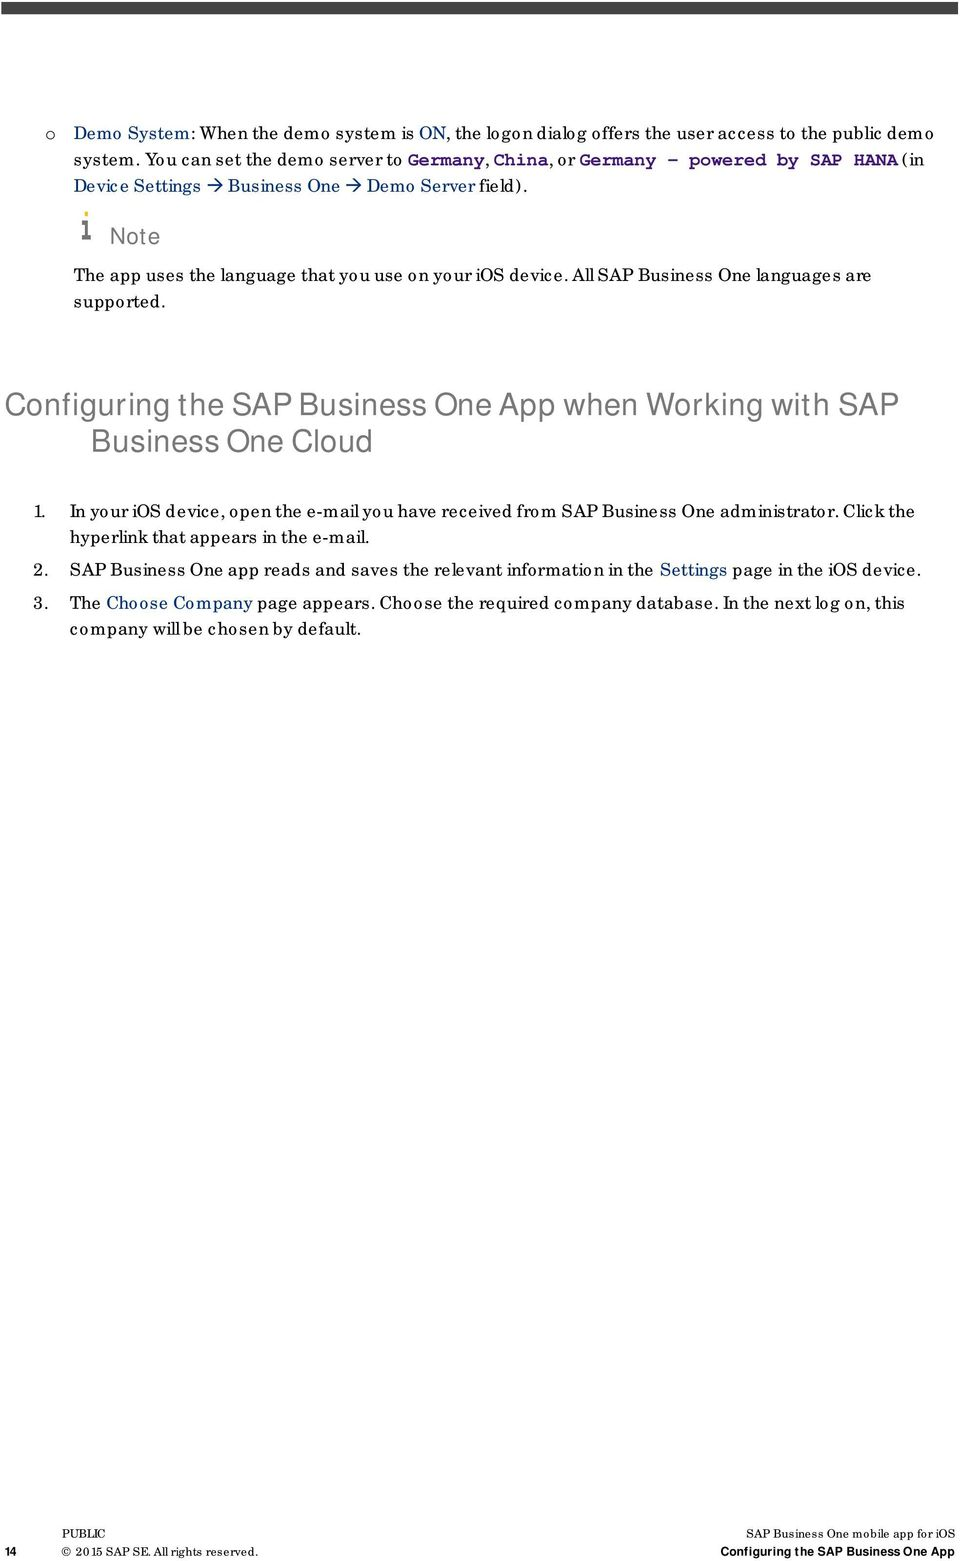 All SAP Business One languages are supported. Configuring the SAP Business One App when Working with SAP Business One Cloud 1.